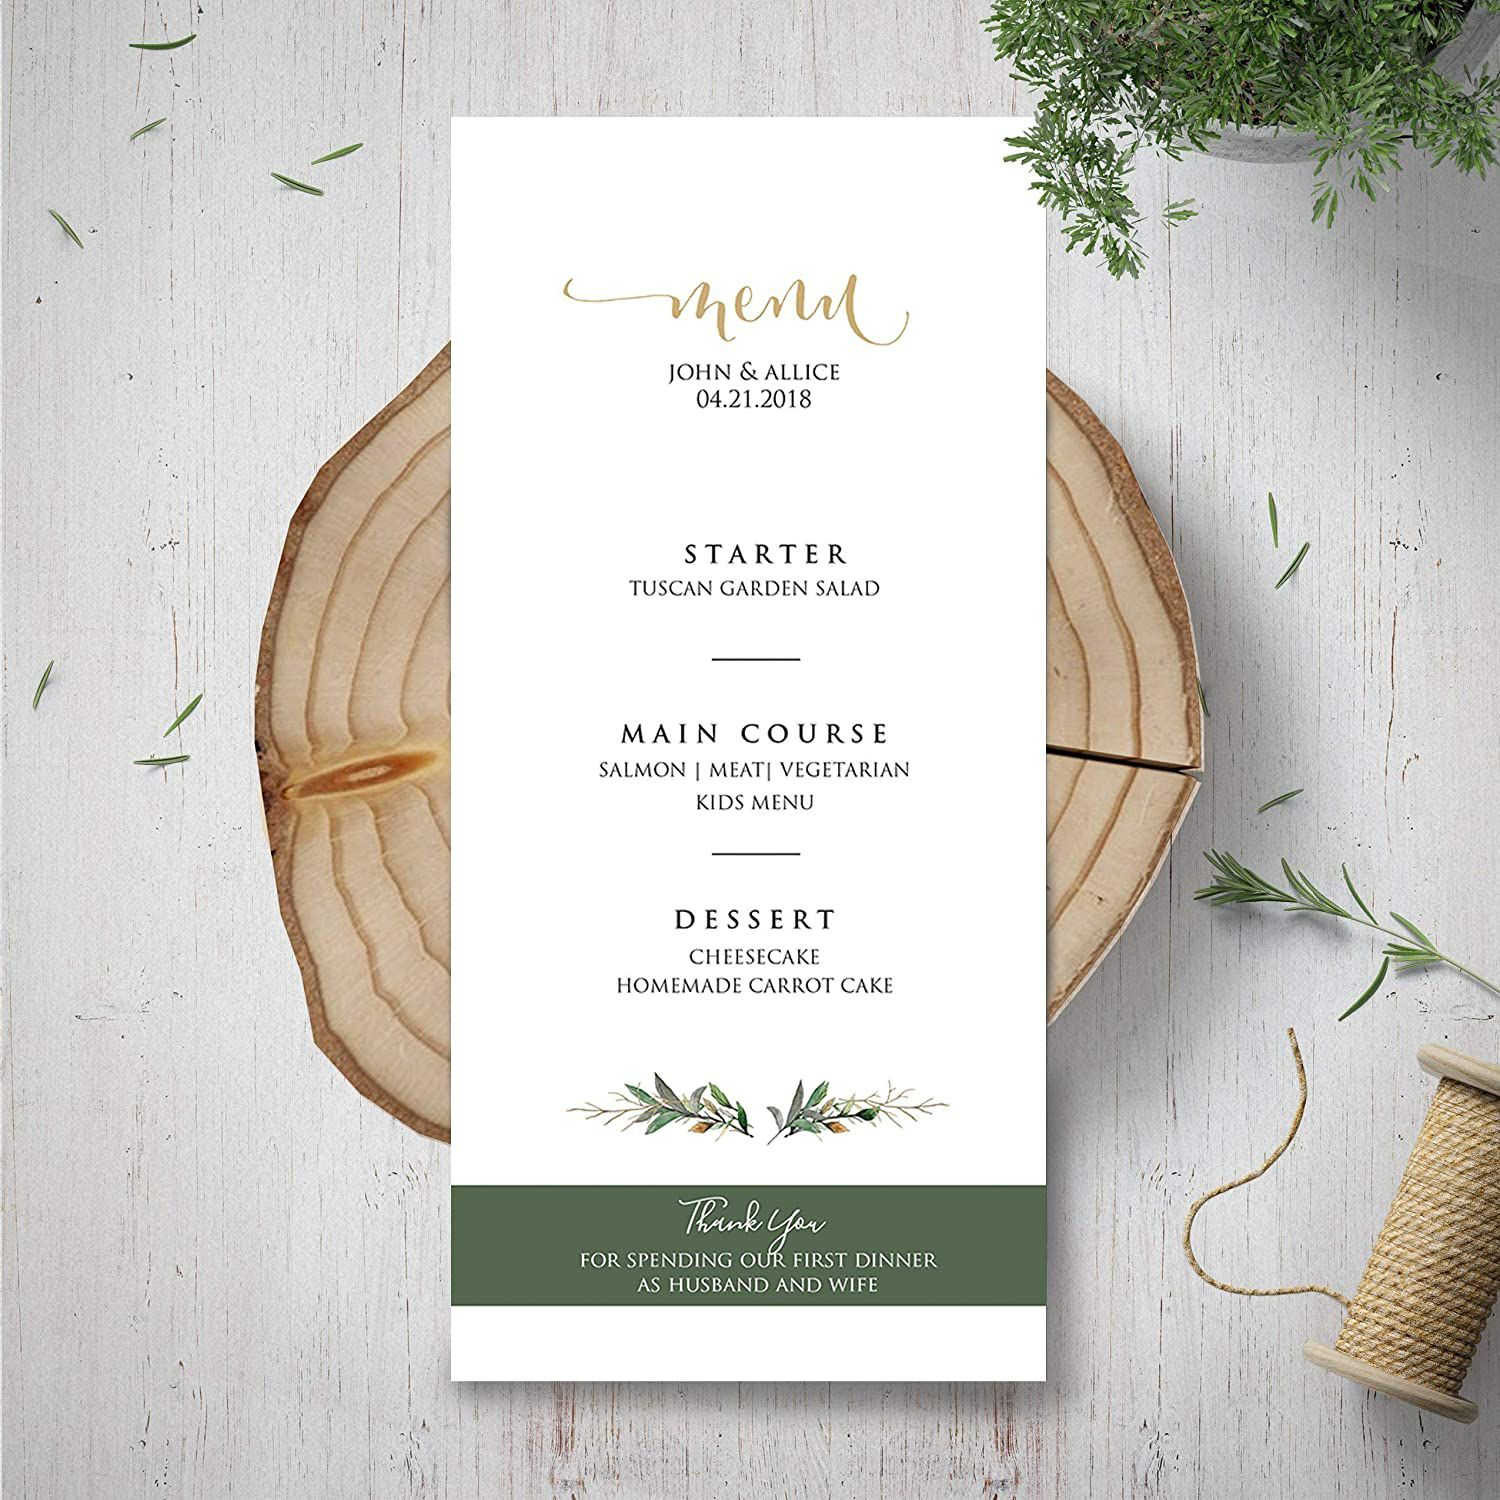 003 Exceptional Dinner Party Menu Template Inspiration  Card Free Italian WordFull